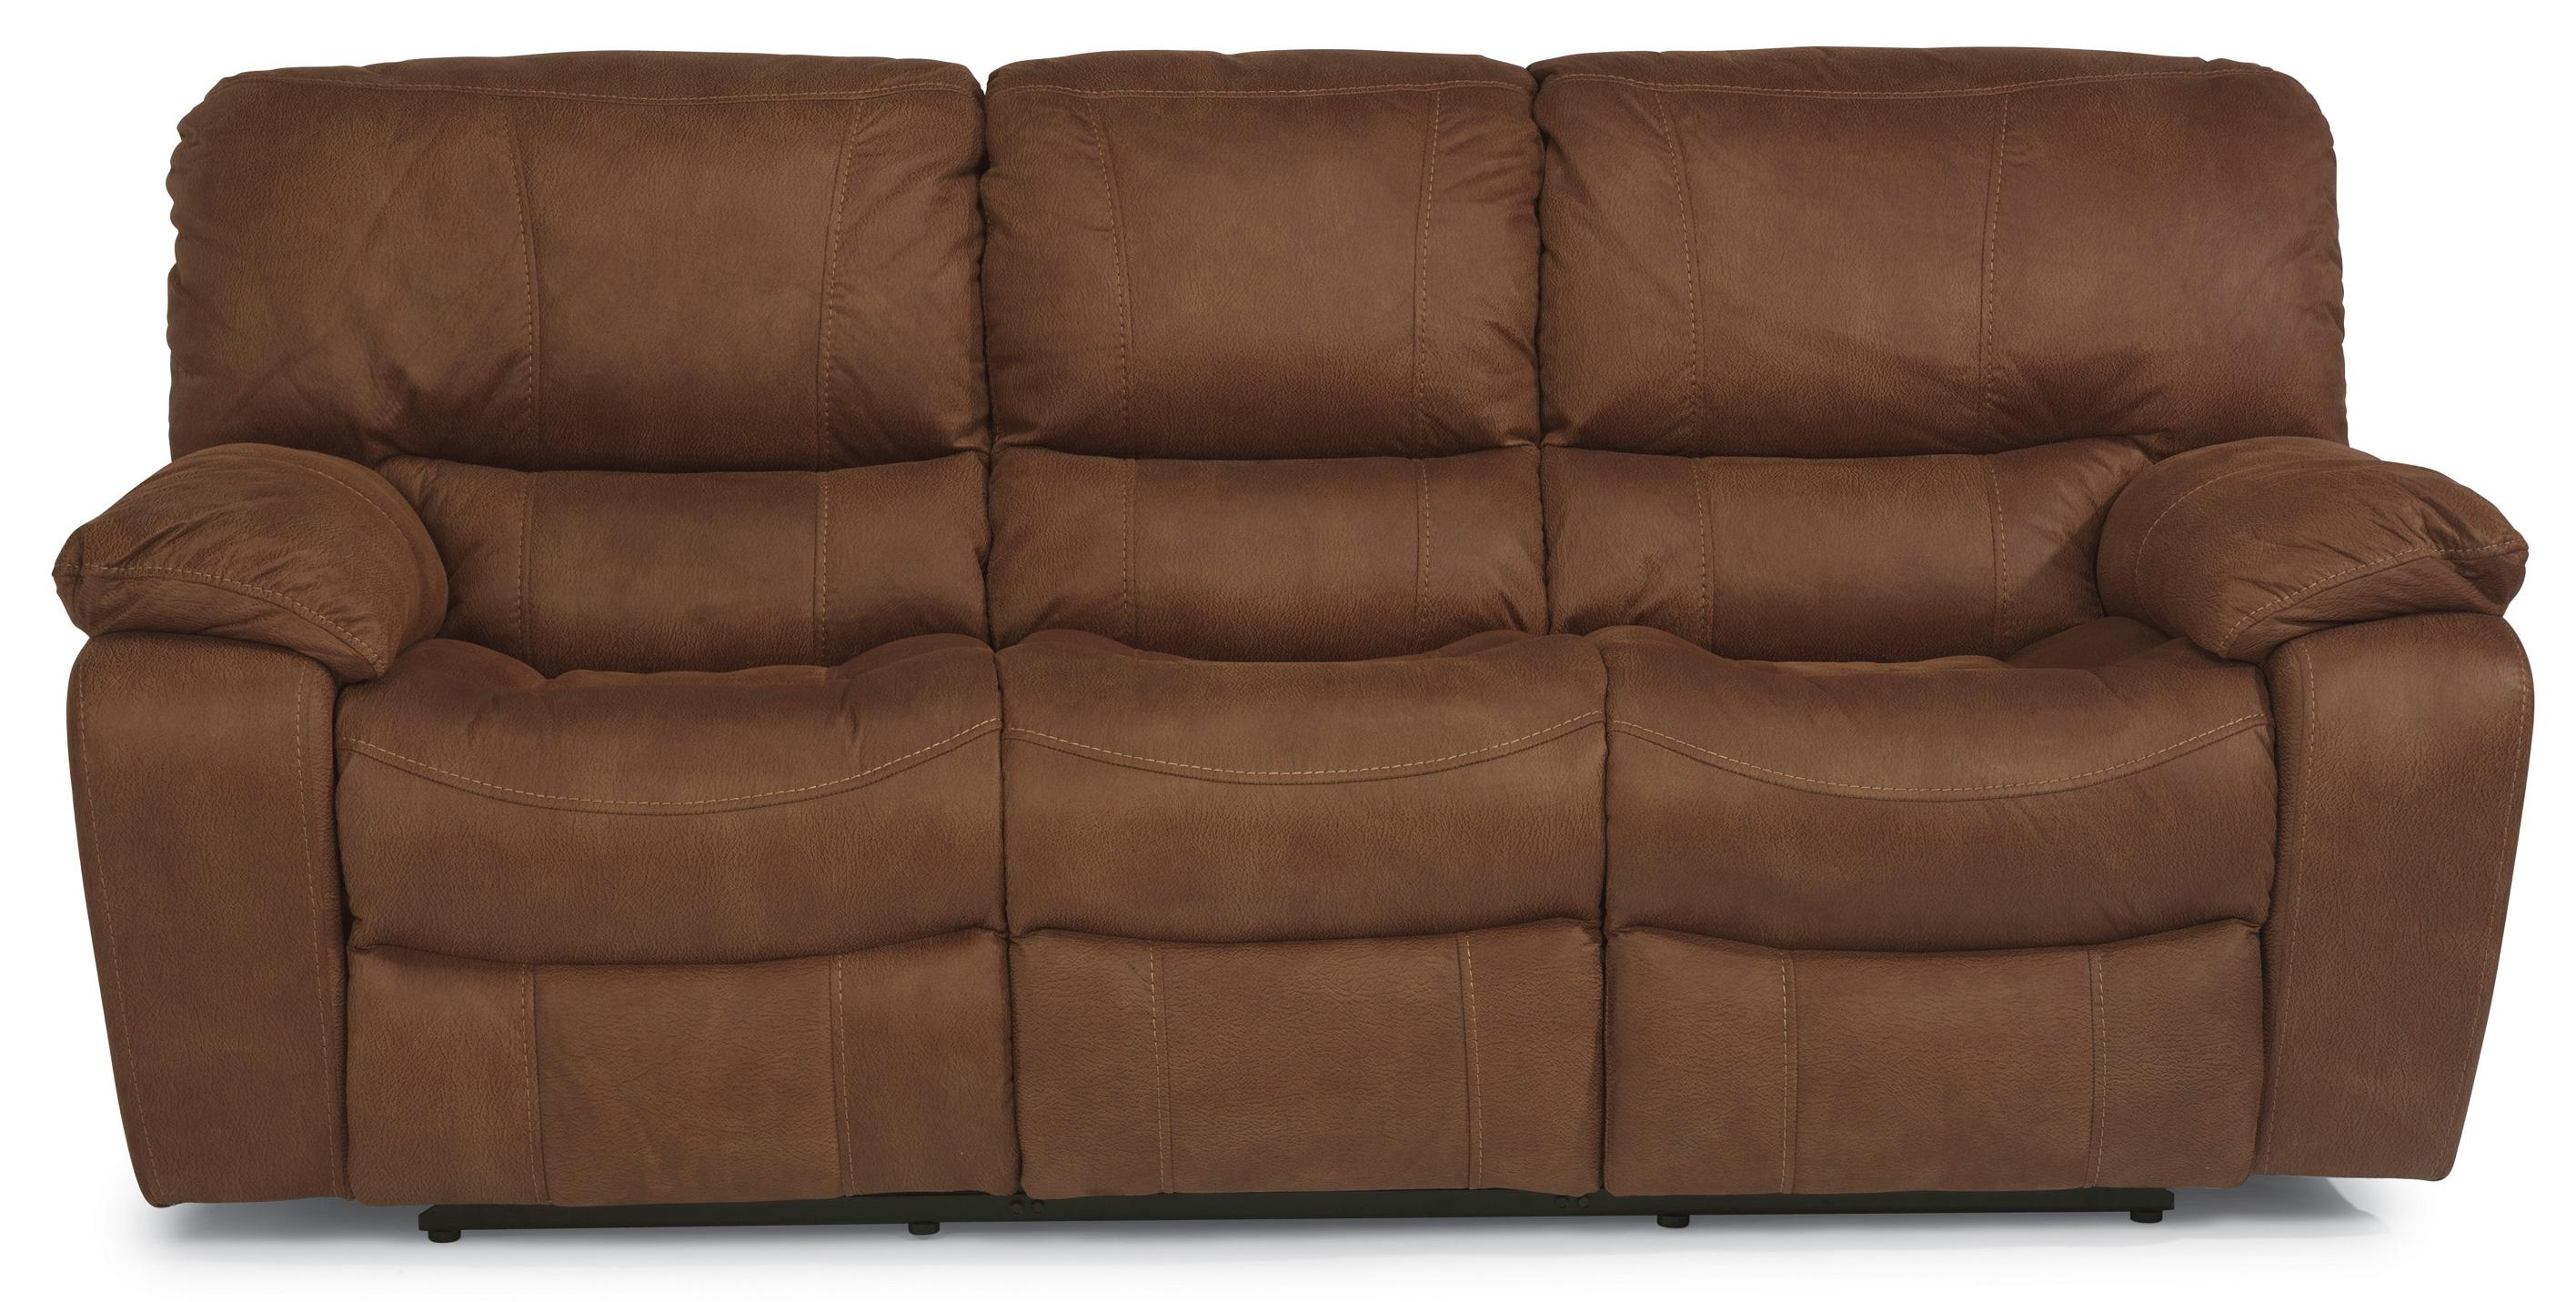 Sofa Express Pineville Nc Flexsteel Latitudes Grandview Reclining Sofa With Plush Pillowed